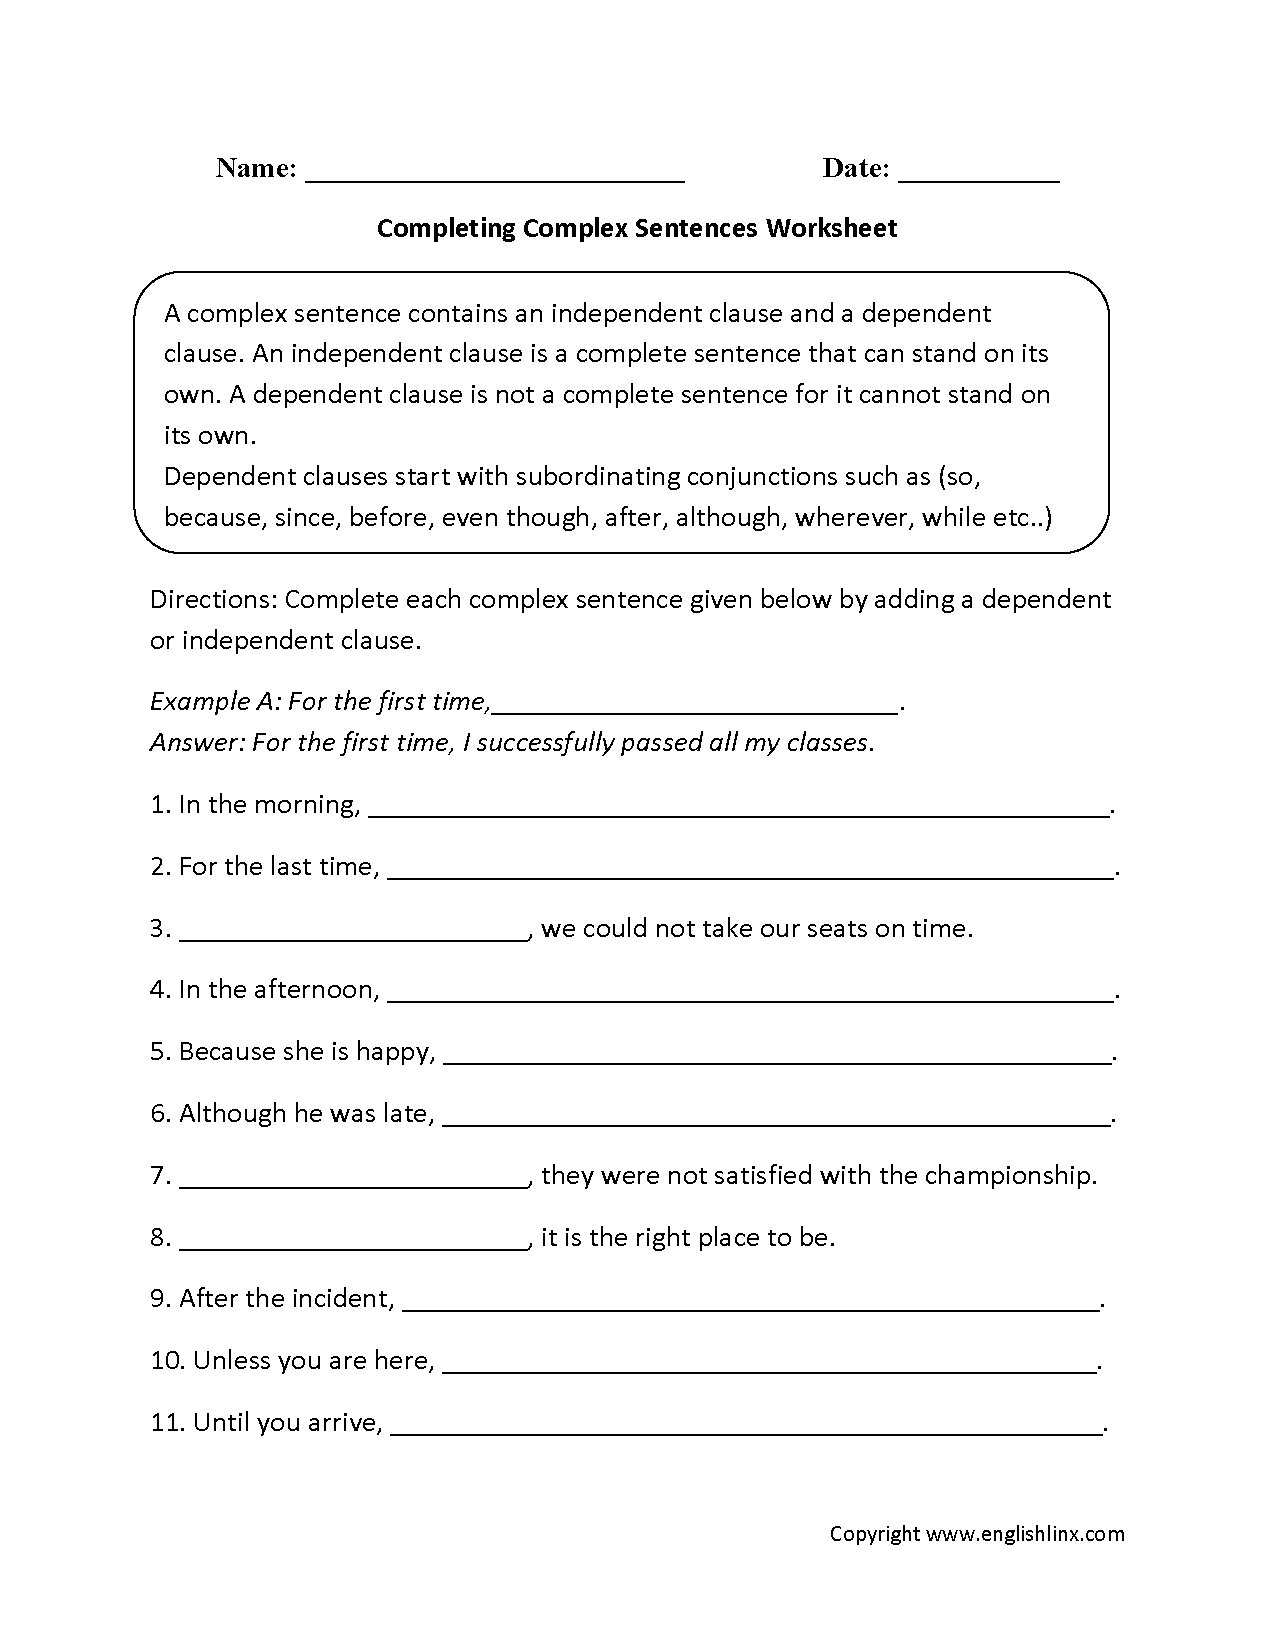 Sentences Worksheets – Compound Complex Sentence Worksheet